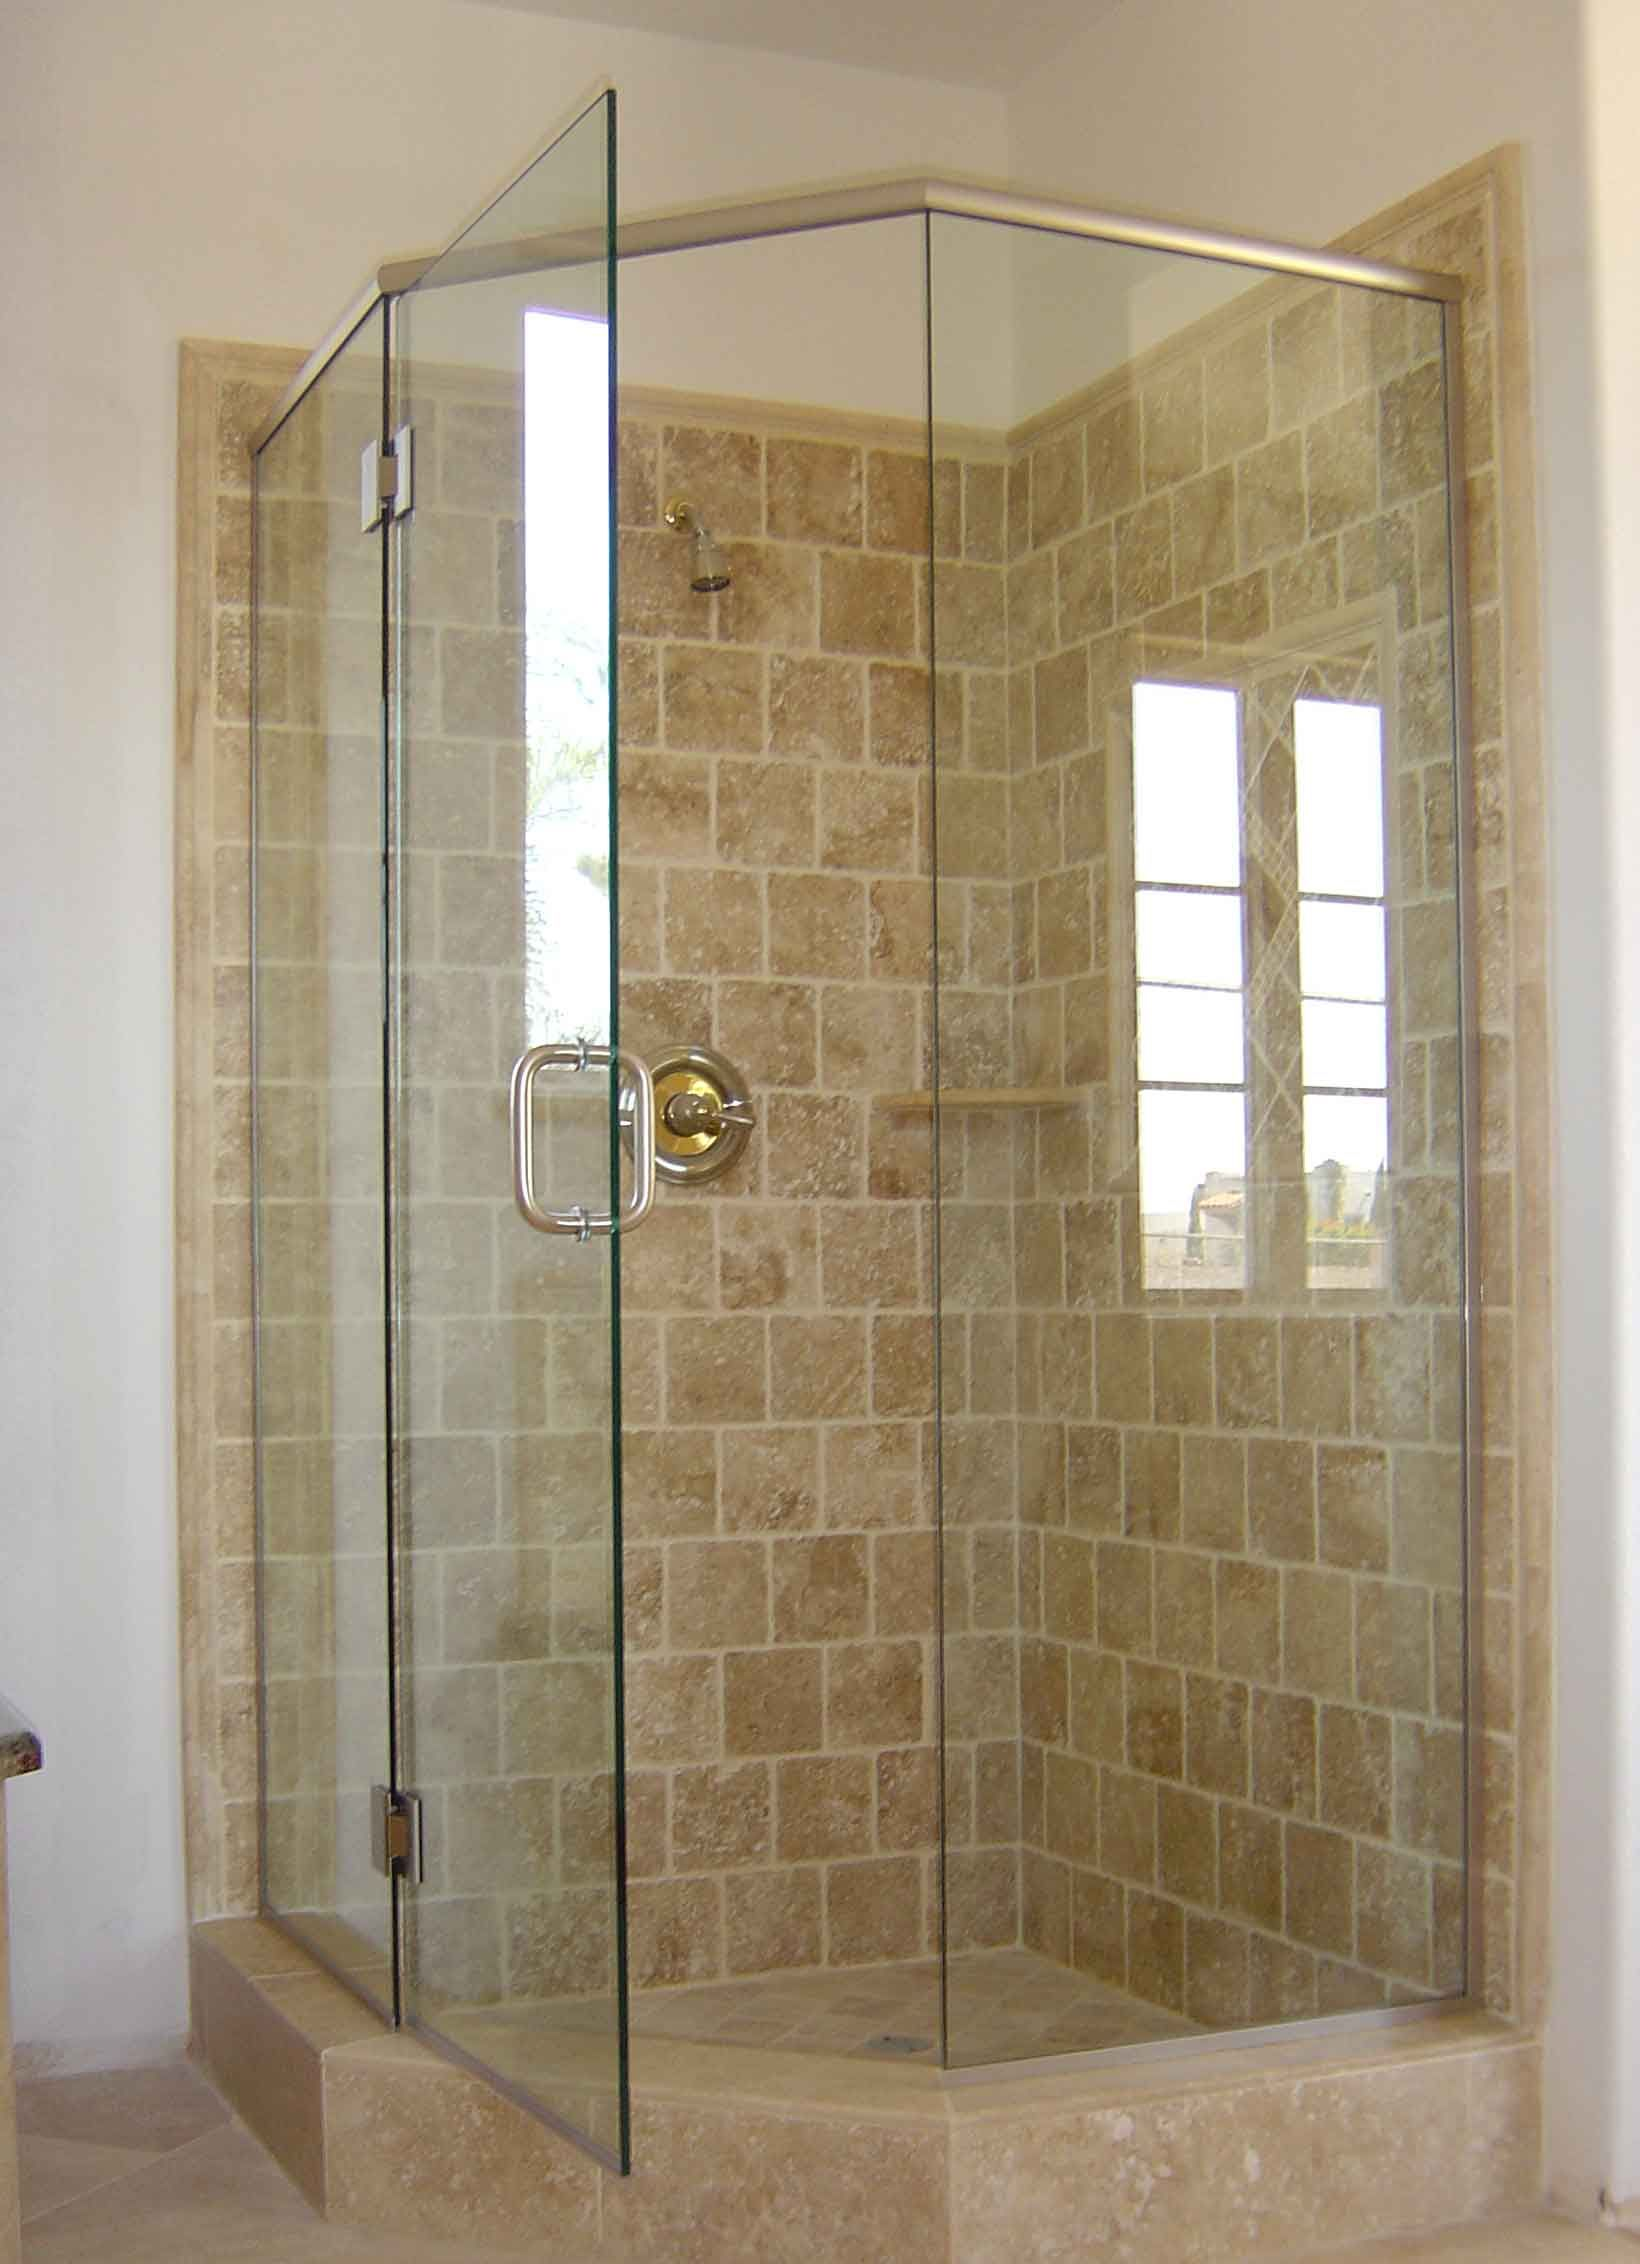 Upstairs bathroom corner shower pinteres for Stand up shower ideas